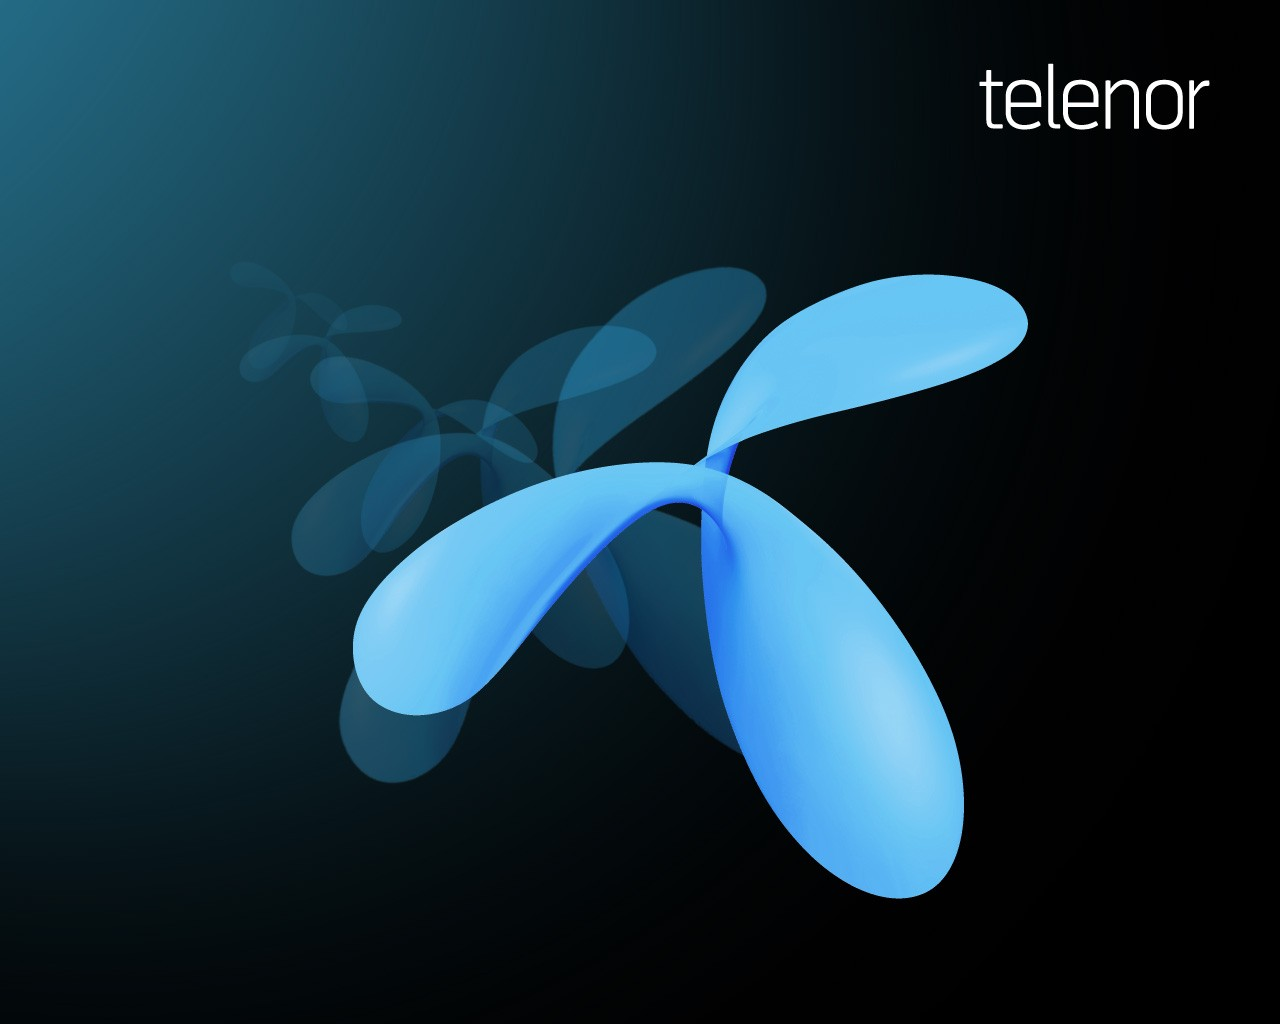 telenor one